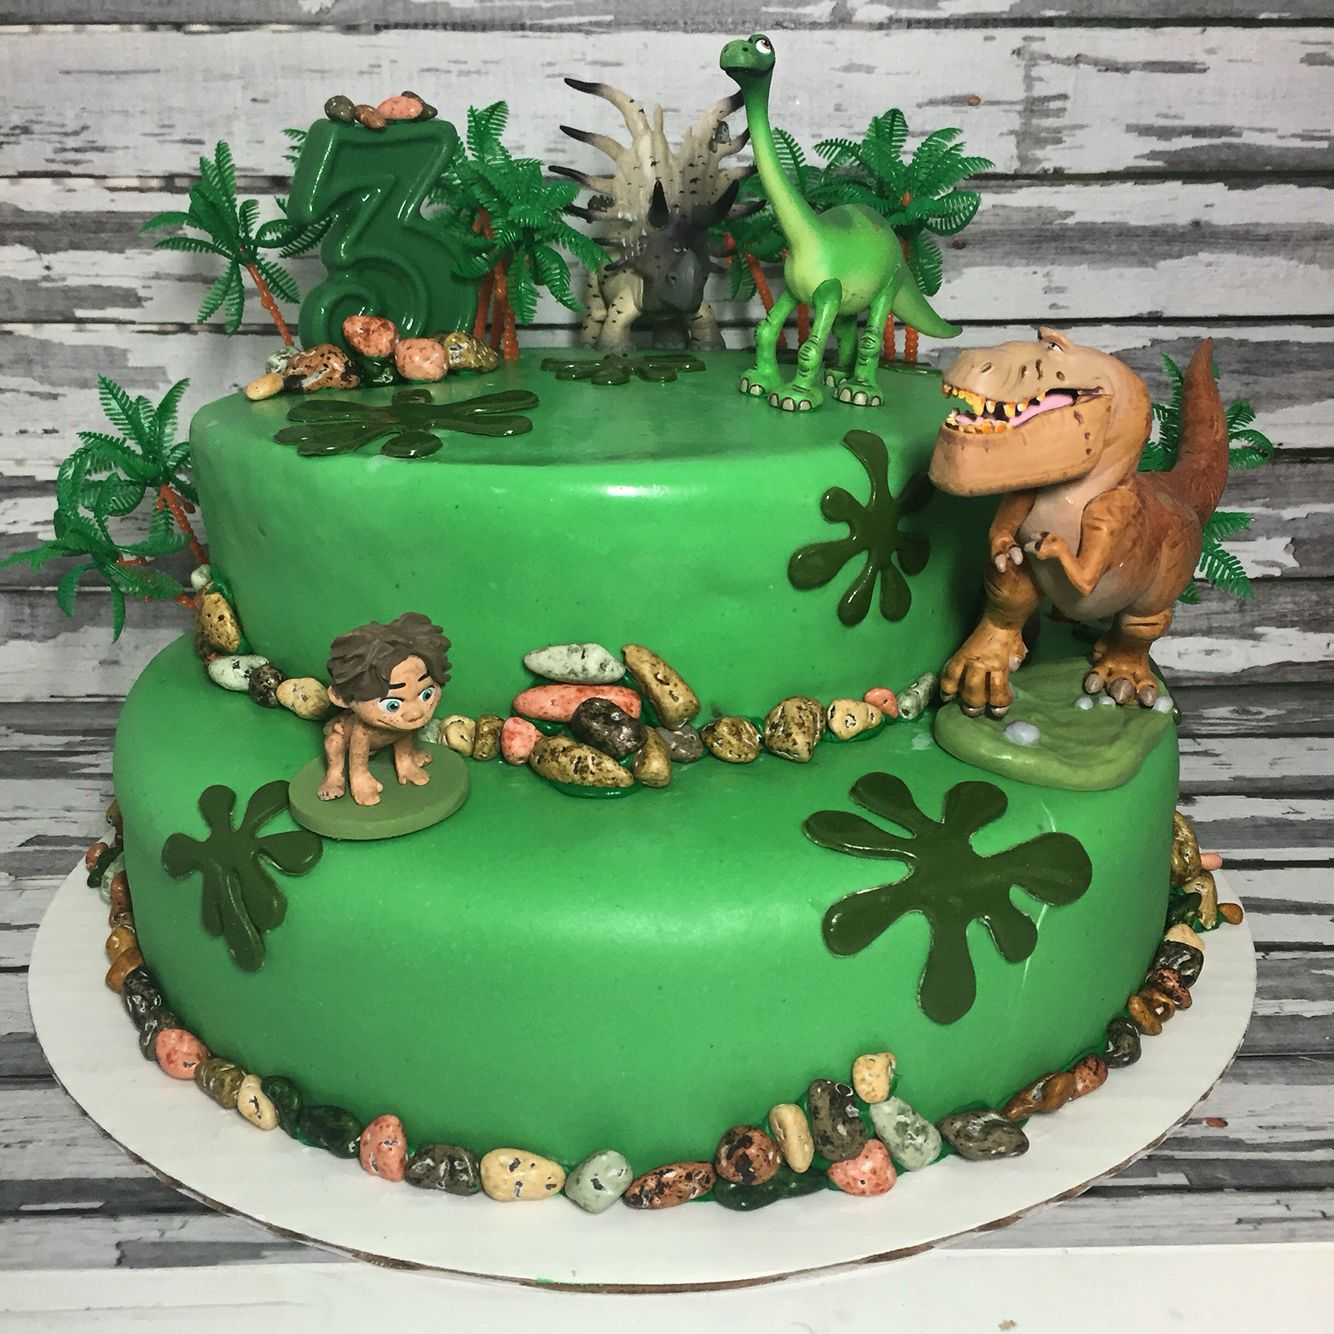 The Good Dinosaur Birthday Cake!!!